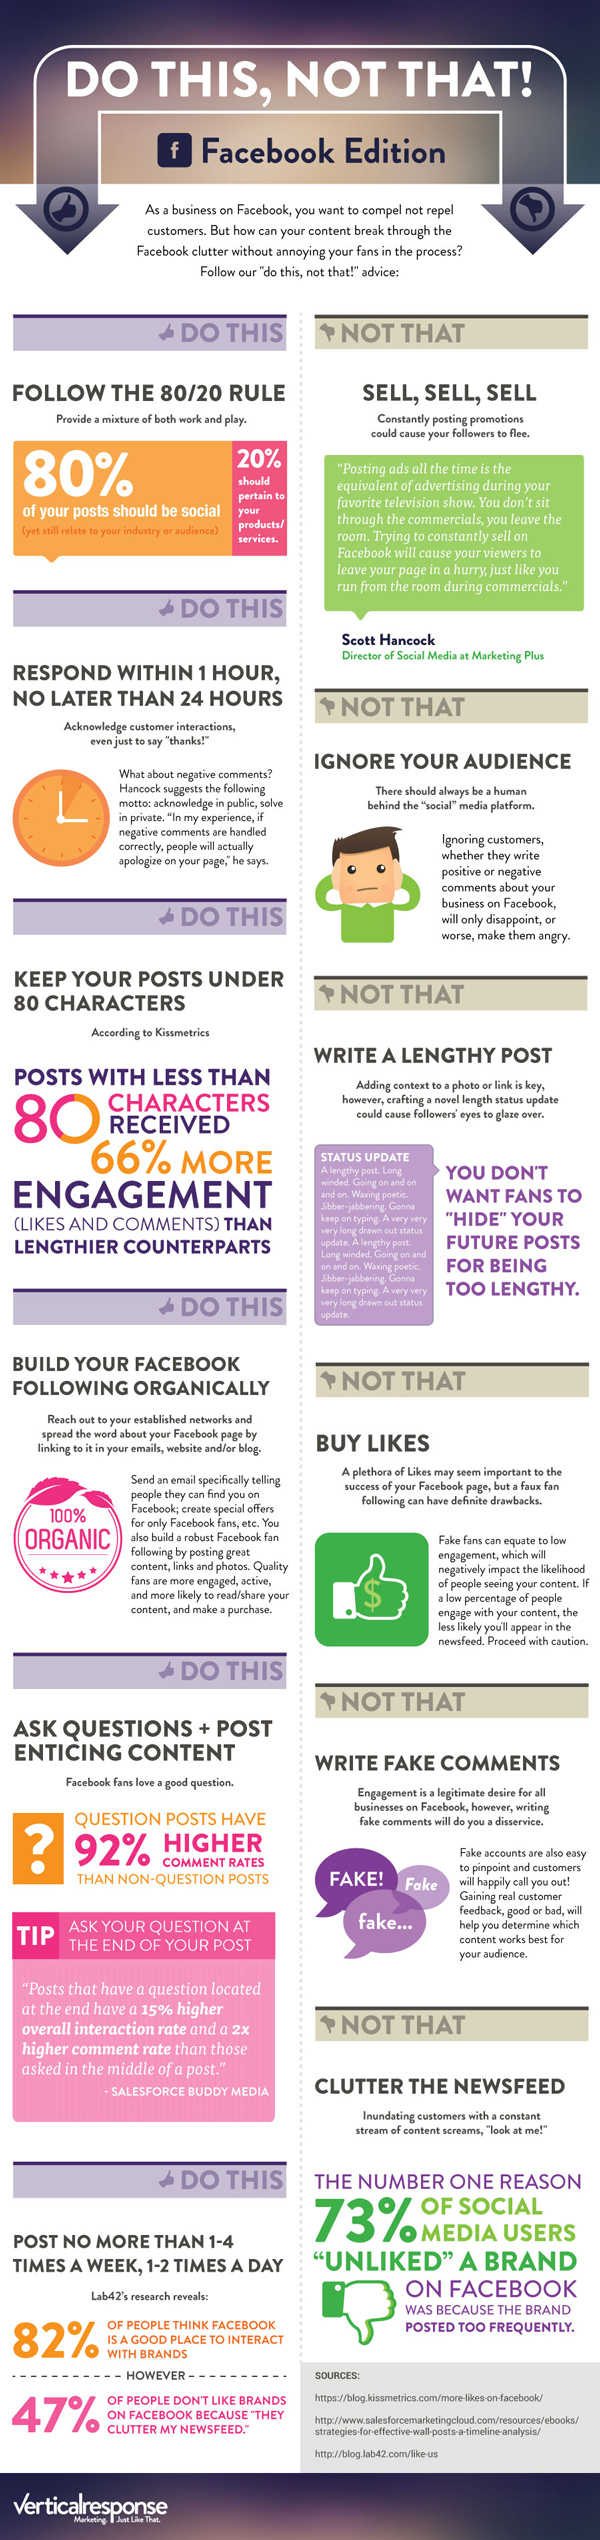 The Do's and Don'ts of Using Facebook for Business [Infographic]